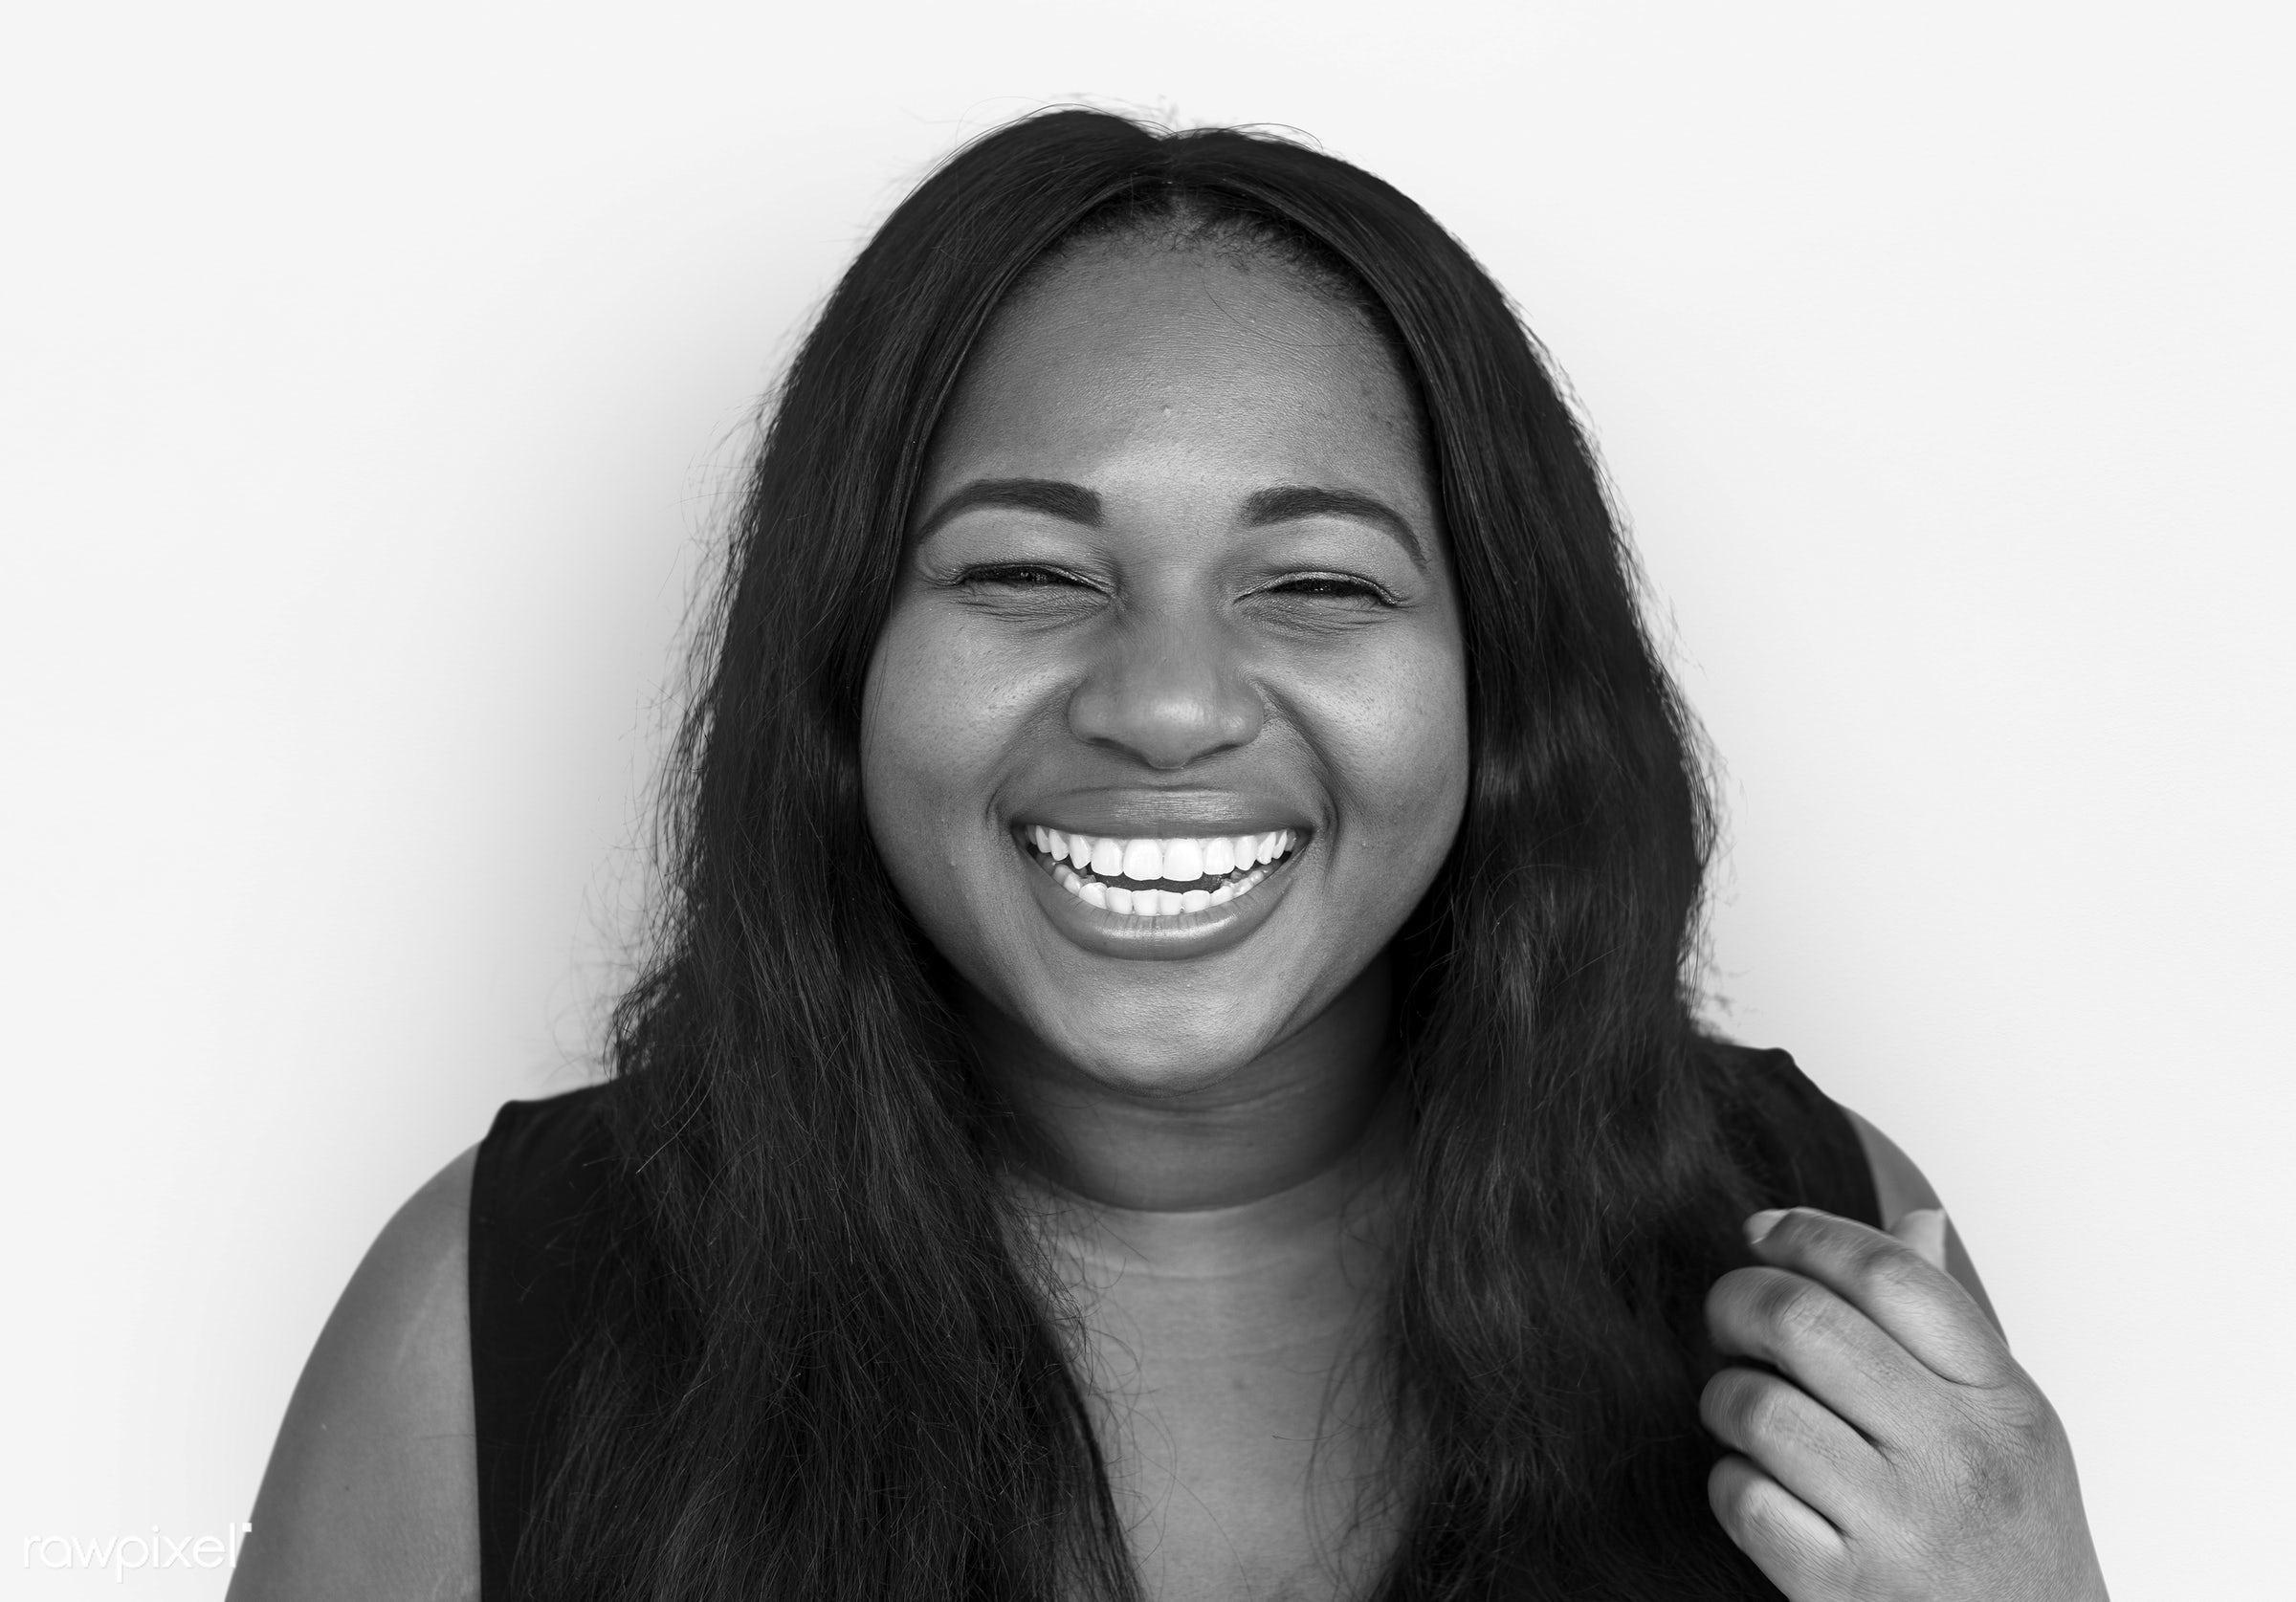 studio, expression, person, people, woman, smile, cheerful, smiling, isolated, african descent, white, happiness, portrait,...